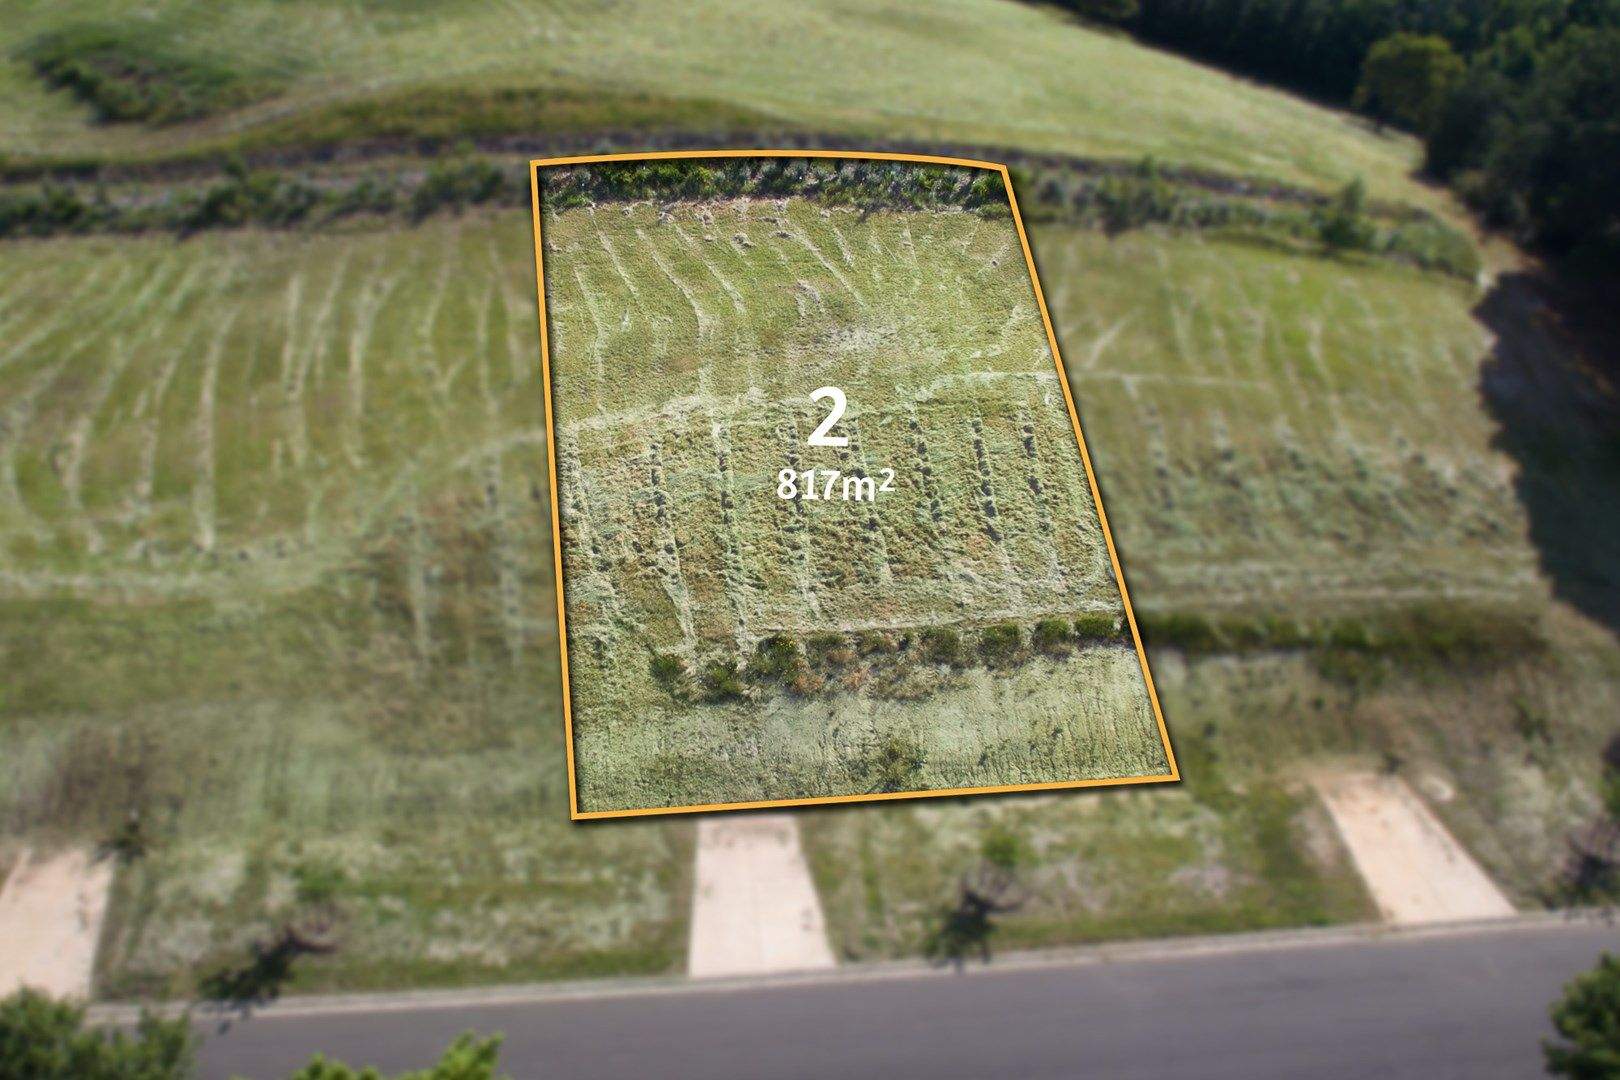 Lot 2,  12 Frith Road, Gisborne VIC 3437, Image 0